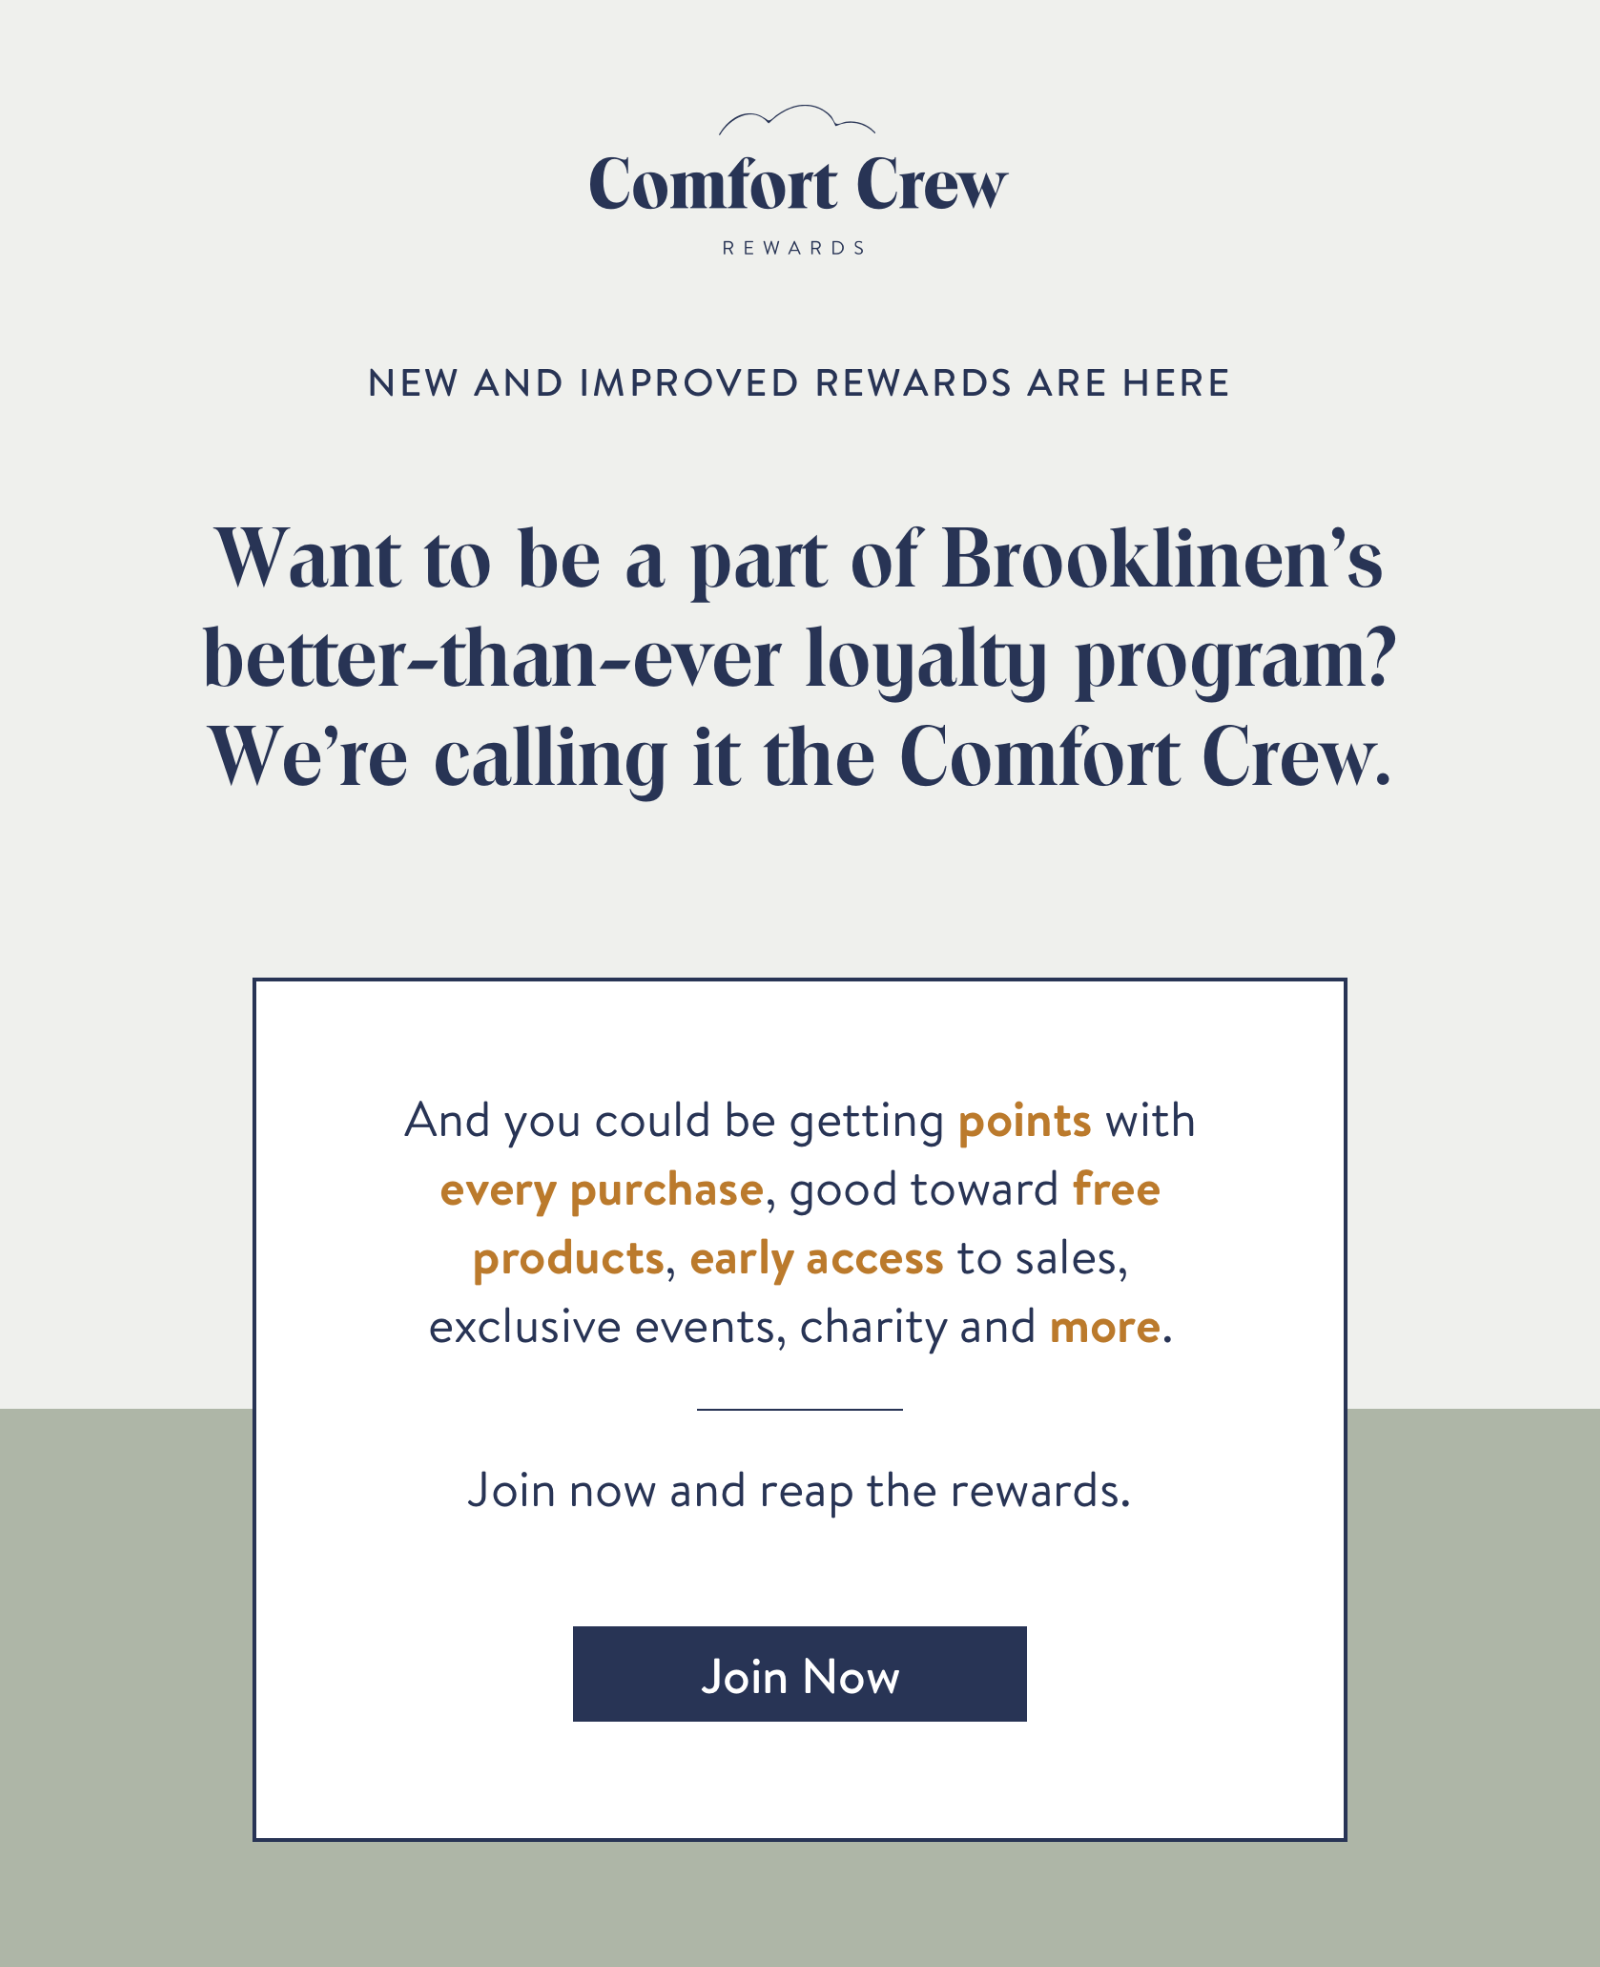 Want to be a part of Brooklinen's better-than-ever loyalty program? We're calling it the Comfort Crew.